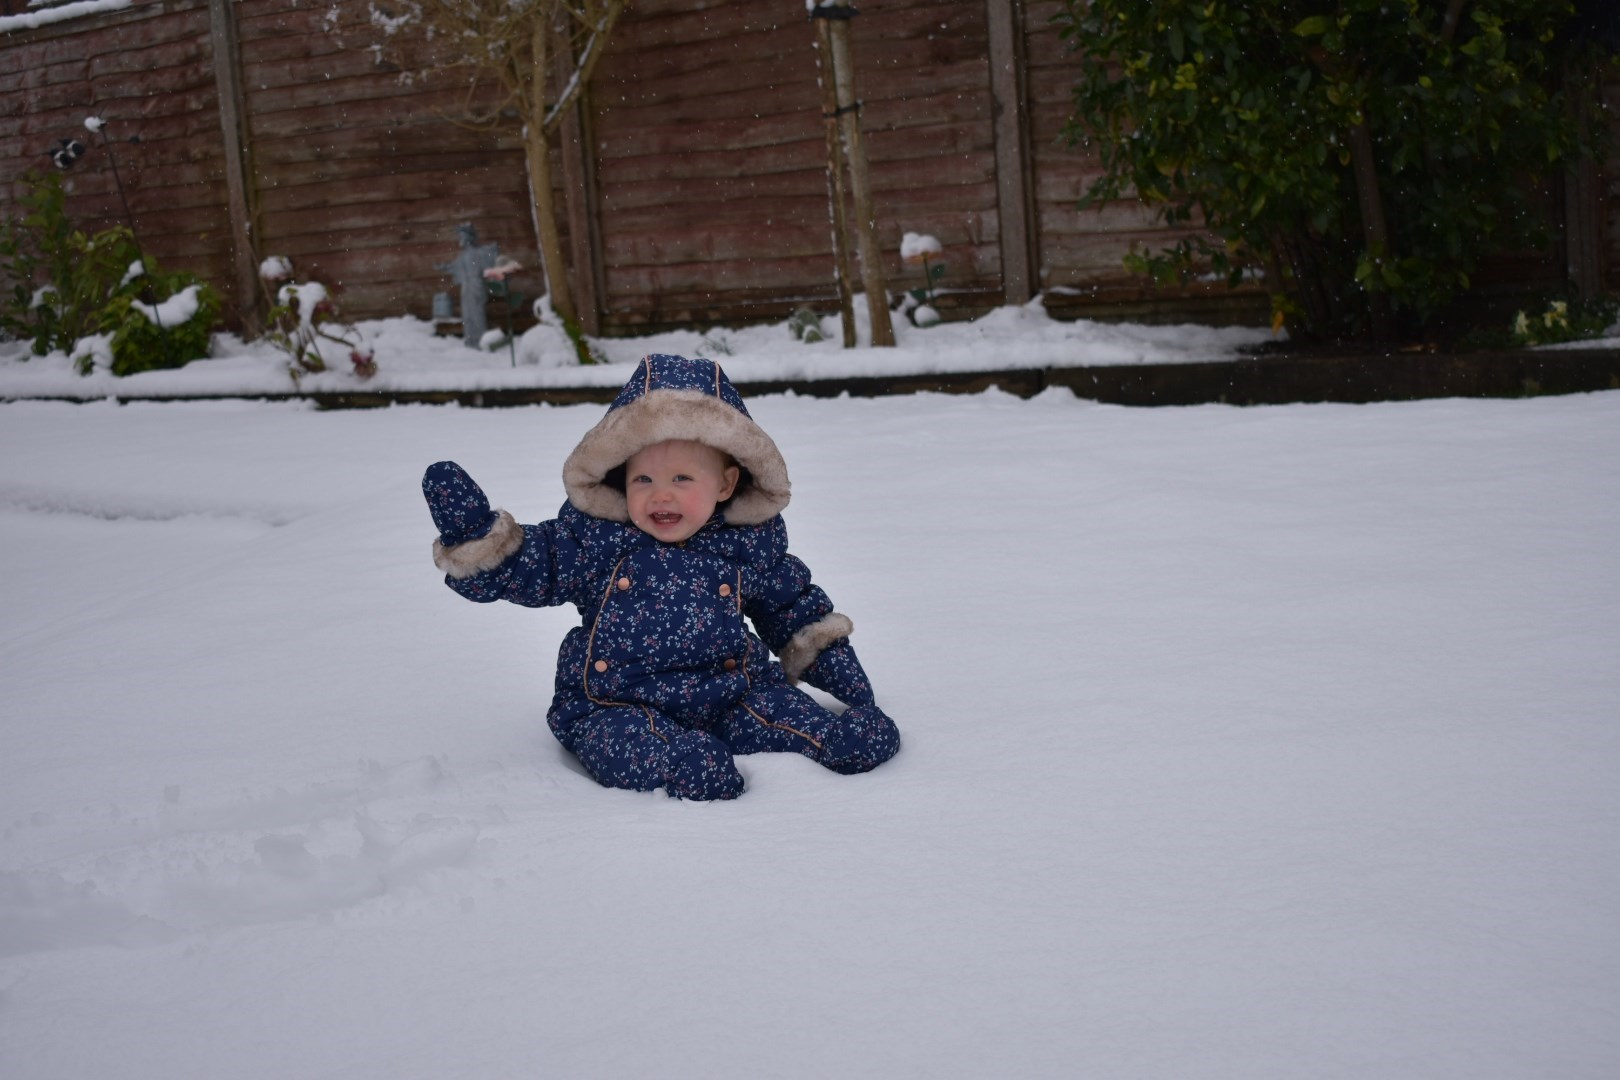 Aria loved playing in the snow!! We love you and miss you xxx